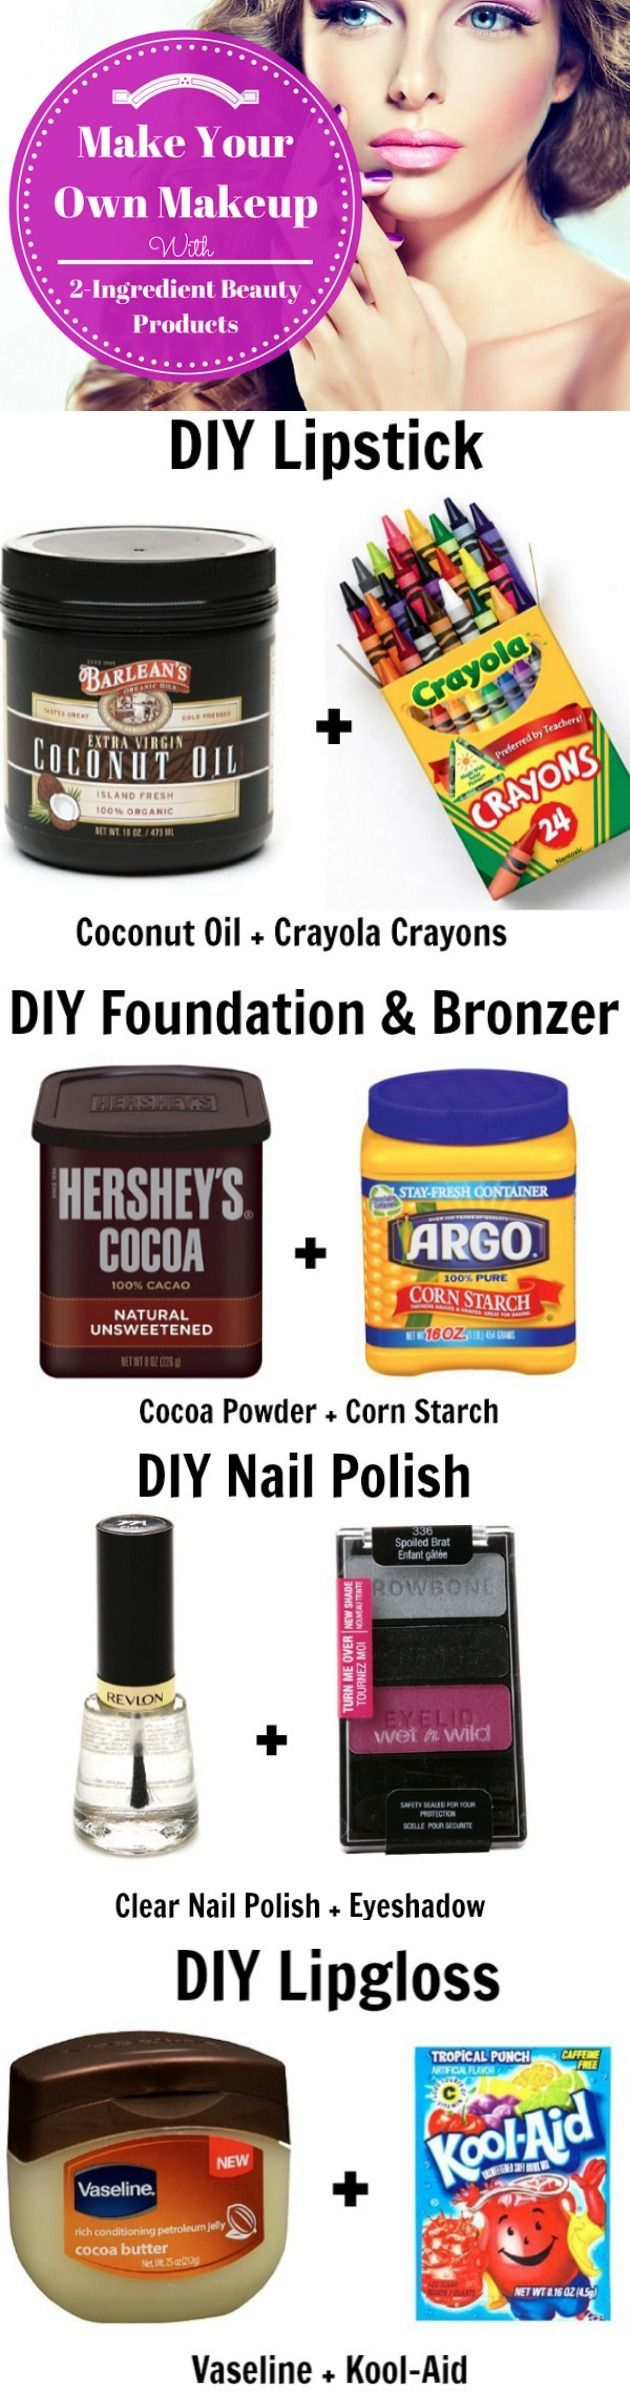 Make Your Own Makeup with only two ingredients!